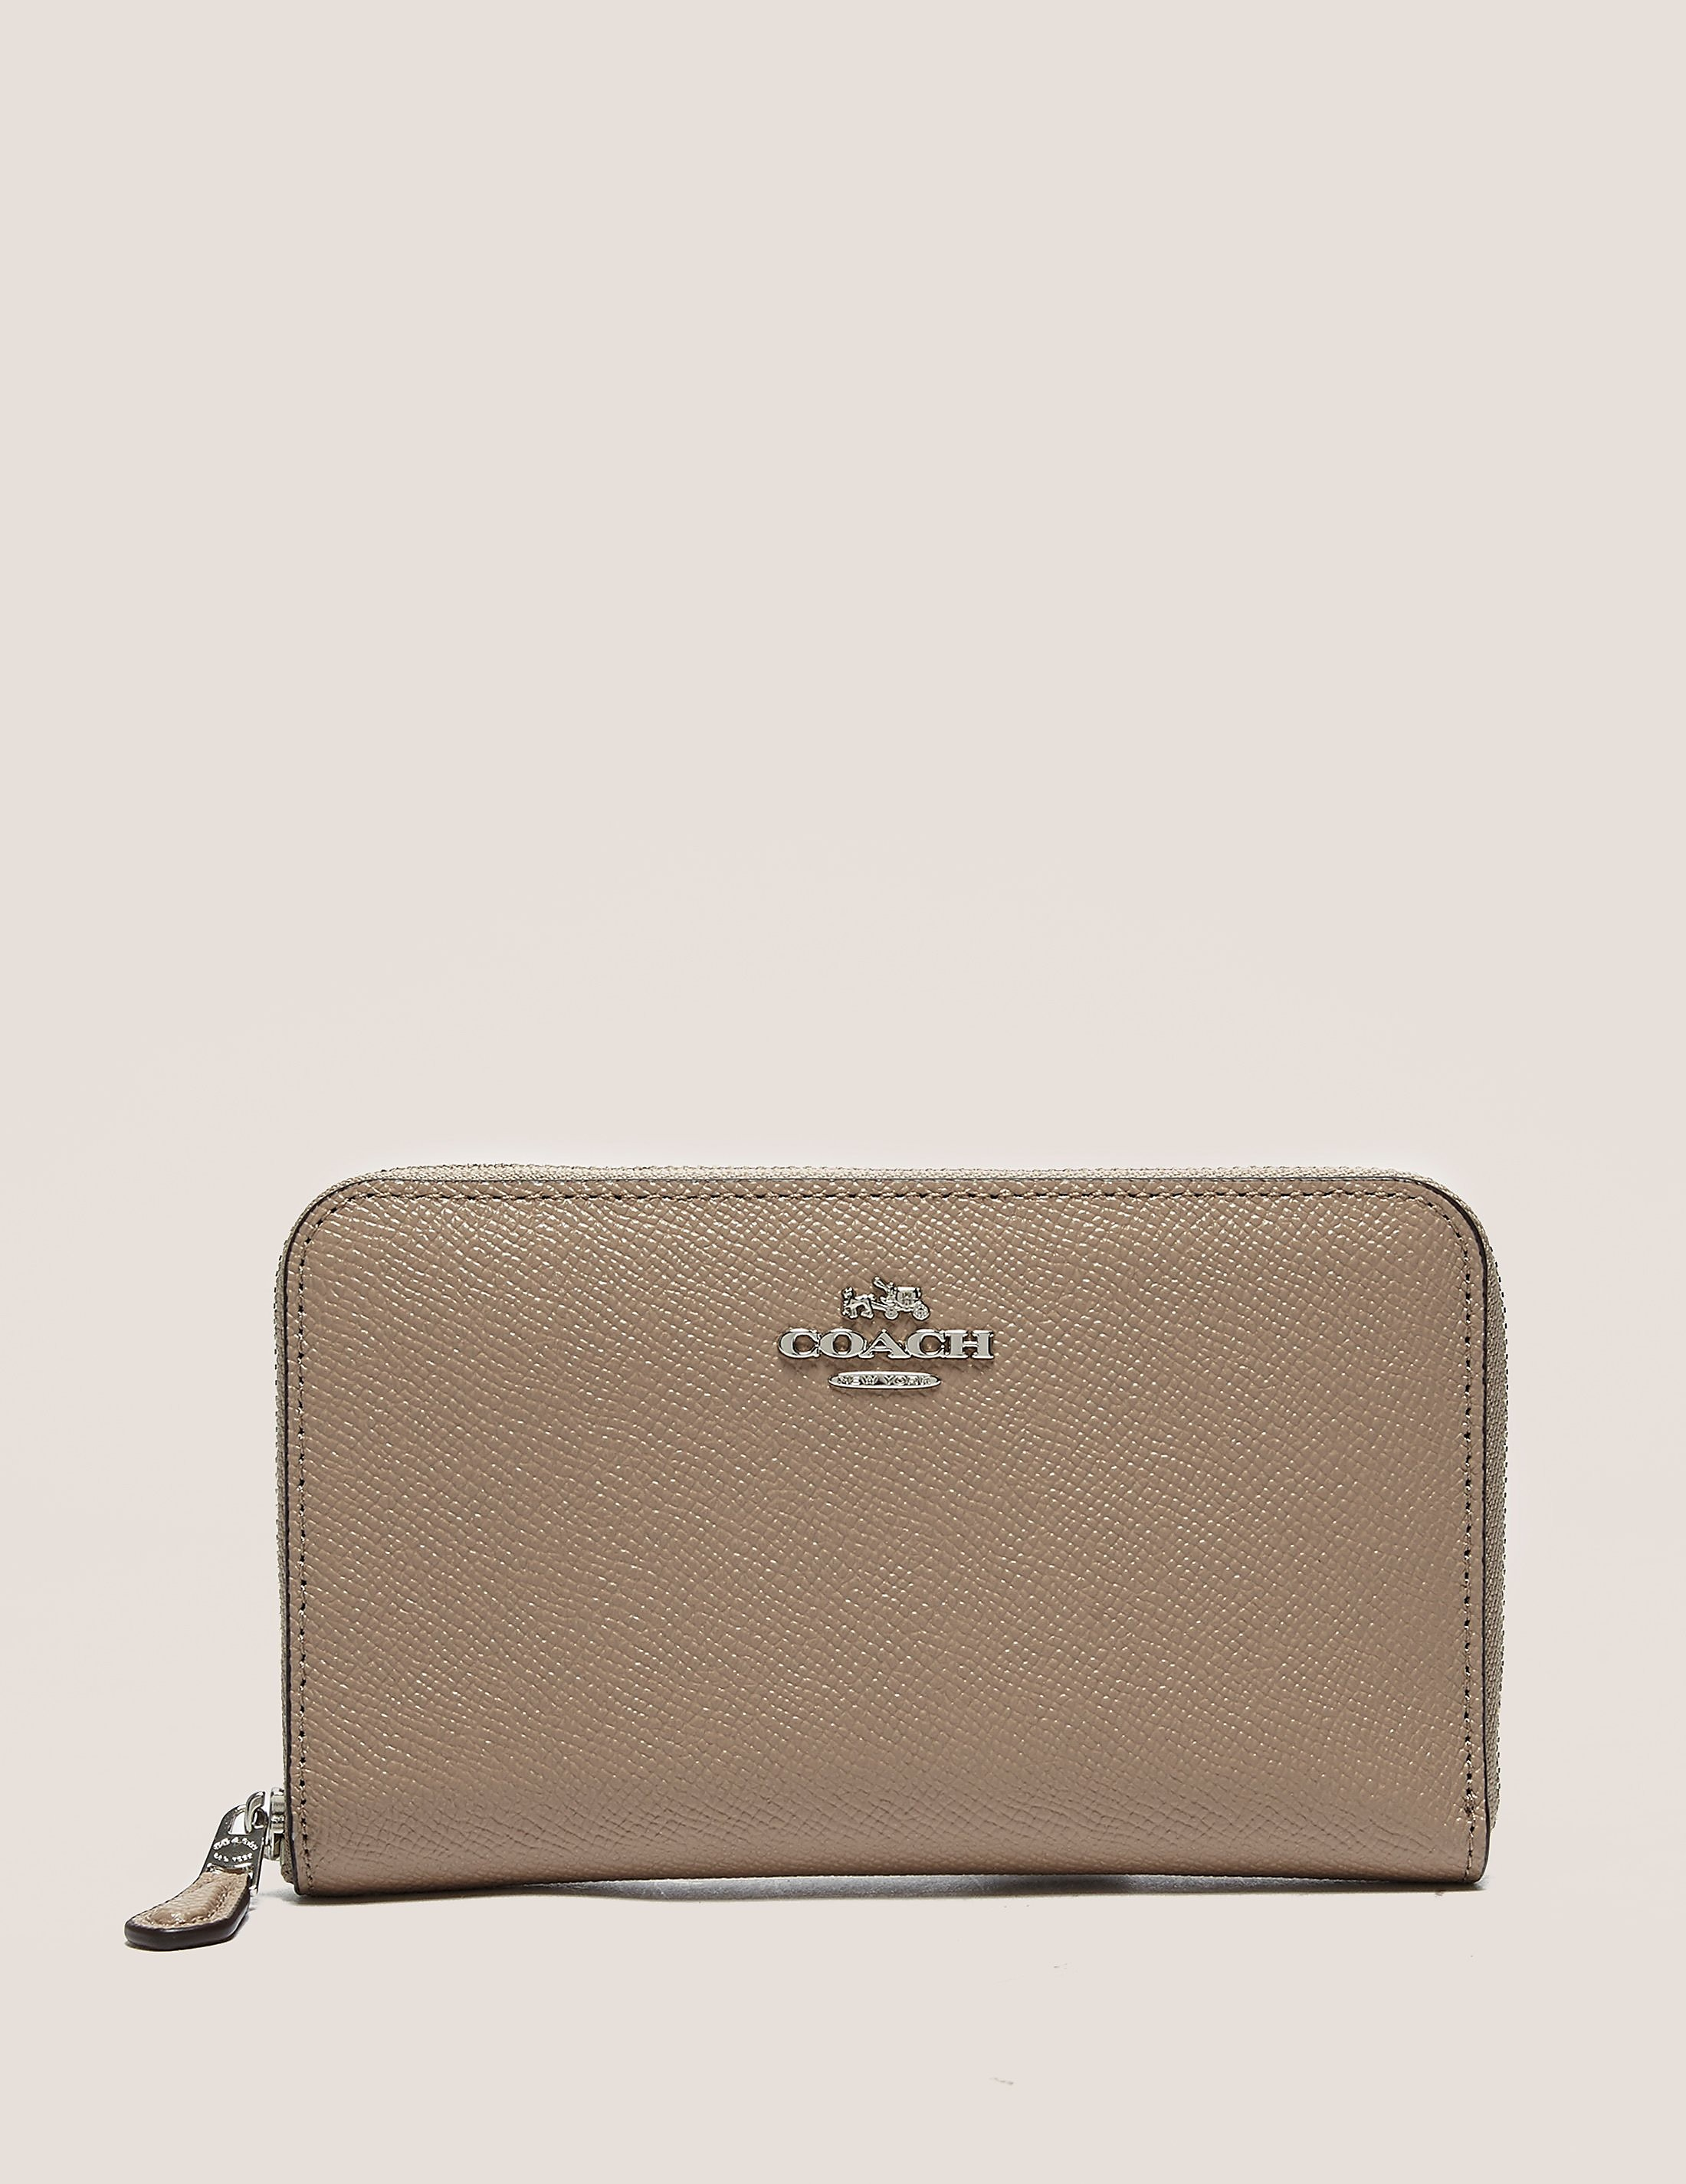 COACH Medium Zip Around Purse